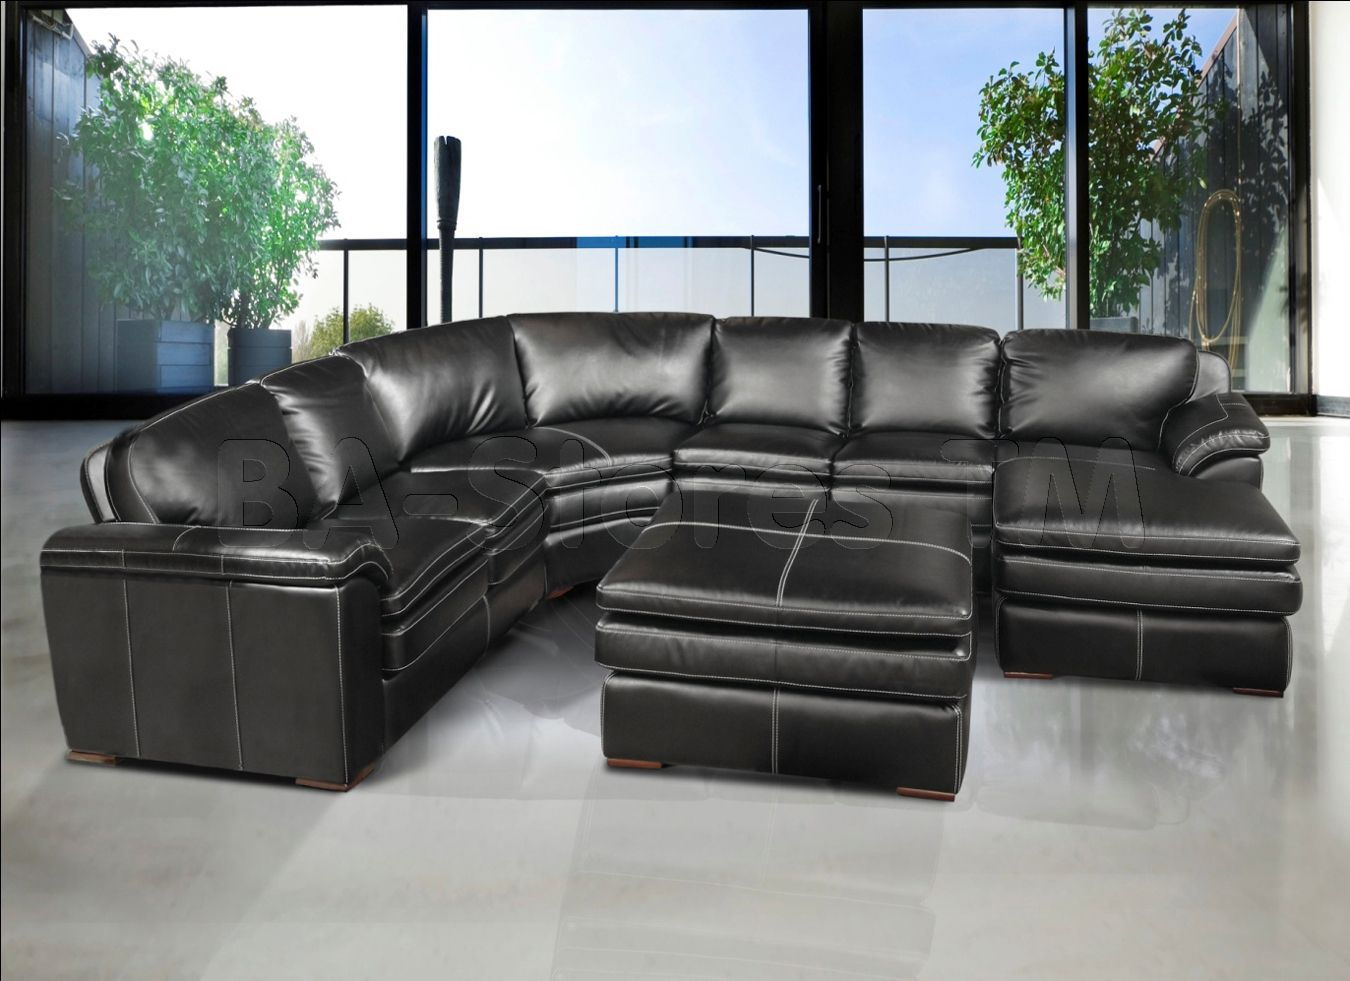 Charcoal Grey Leather Sectional Sofa | Living room furniture ...